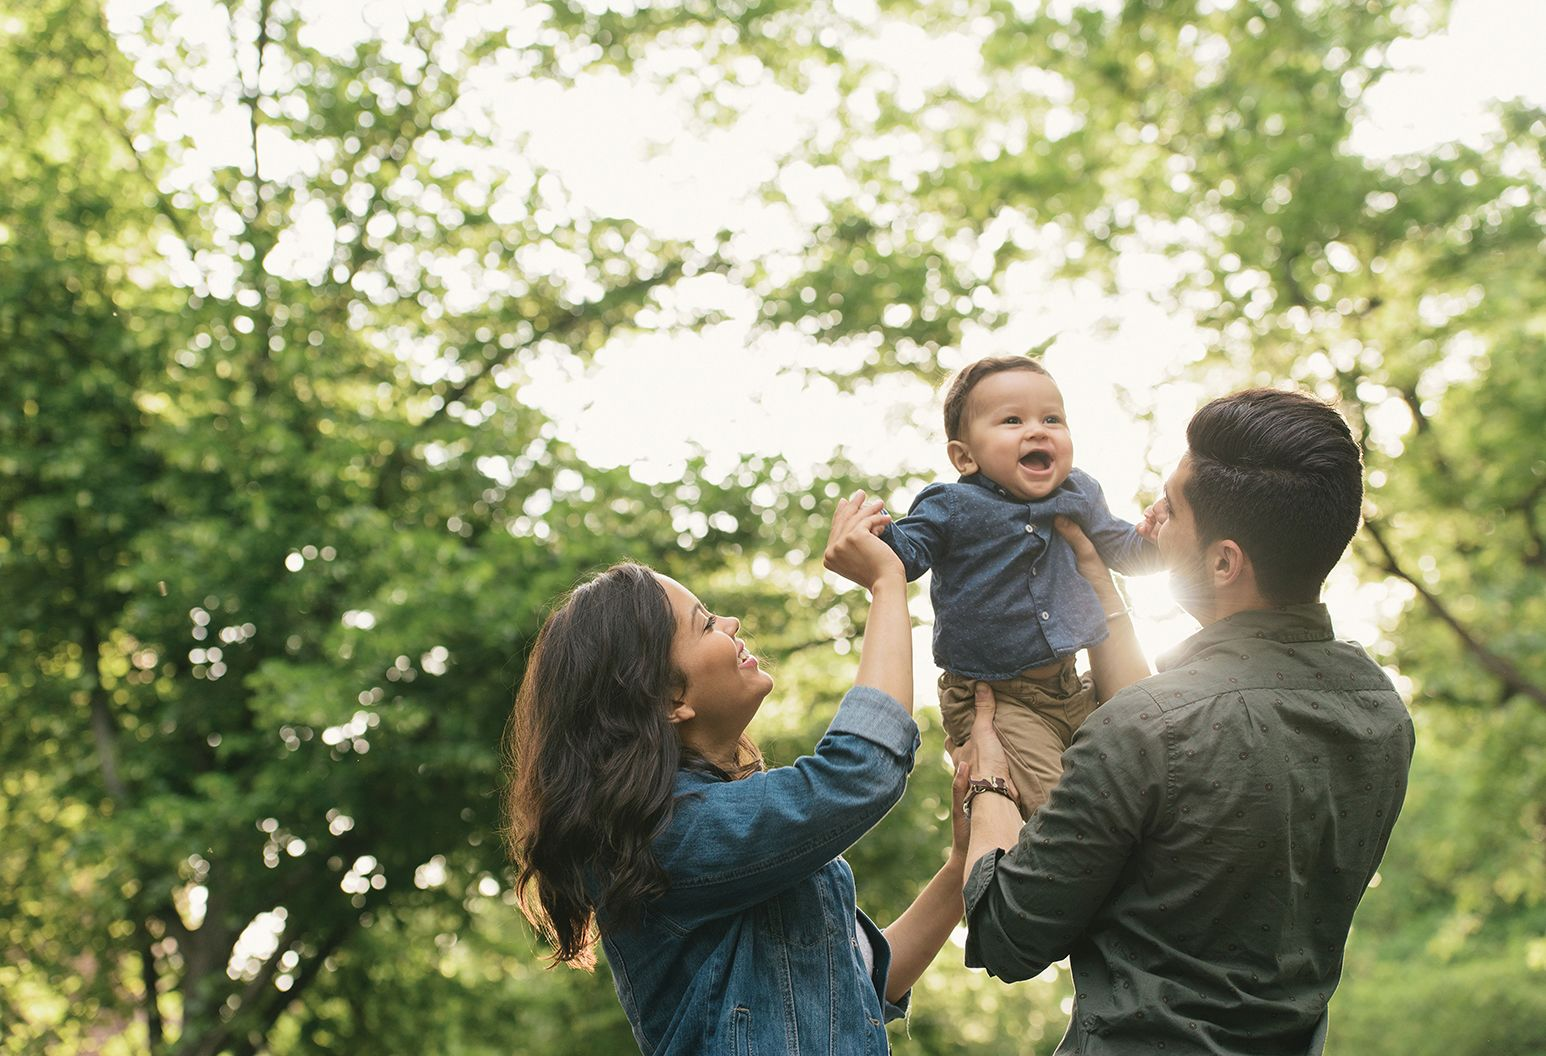 A six month old male child in a blue shirt and khaki pants is held in the air by his parents who are facing away from the camera. Ther mother has long dark hair and a blue shirt and the father has a green shirt. They are outside surrounded by trees.